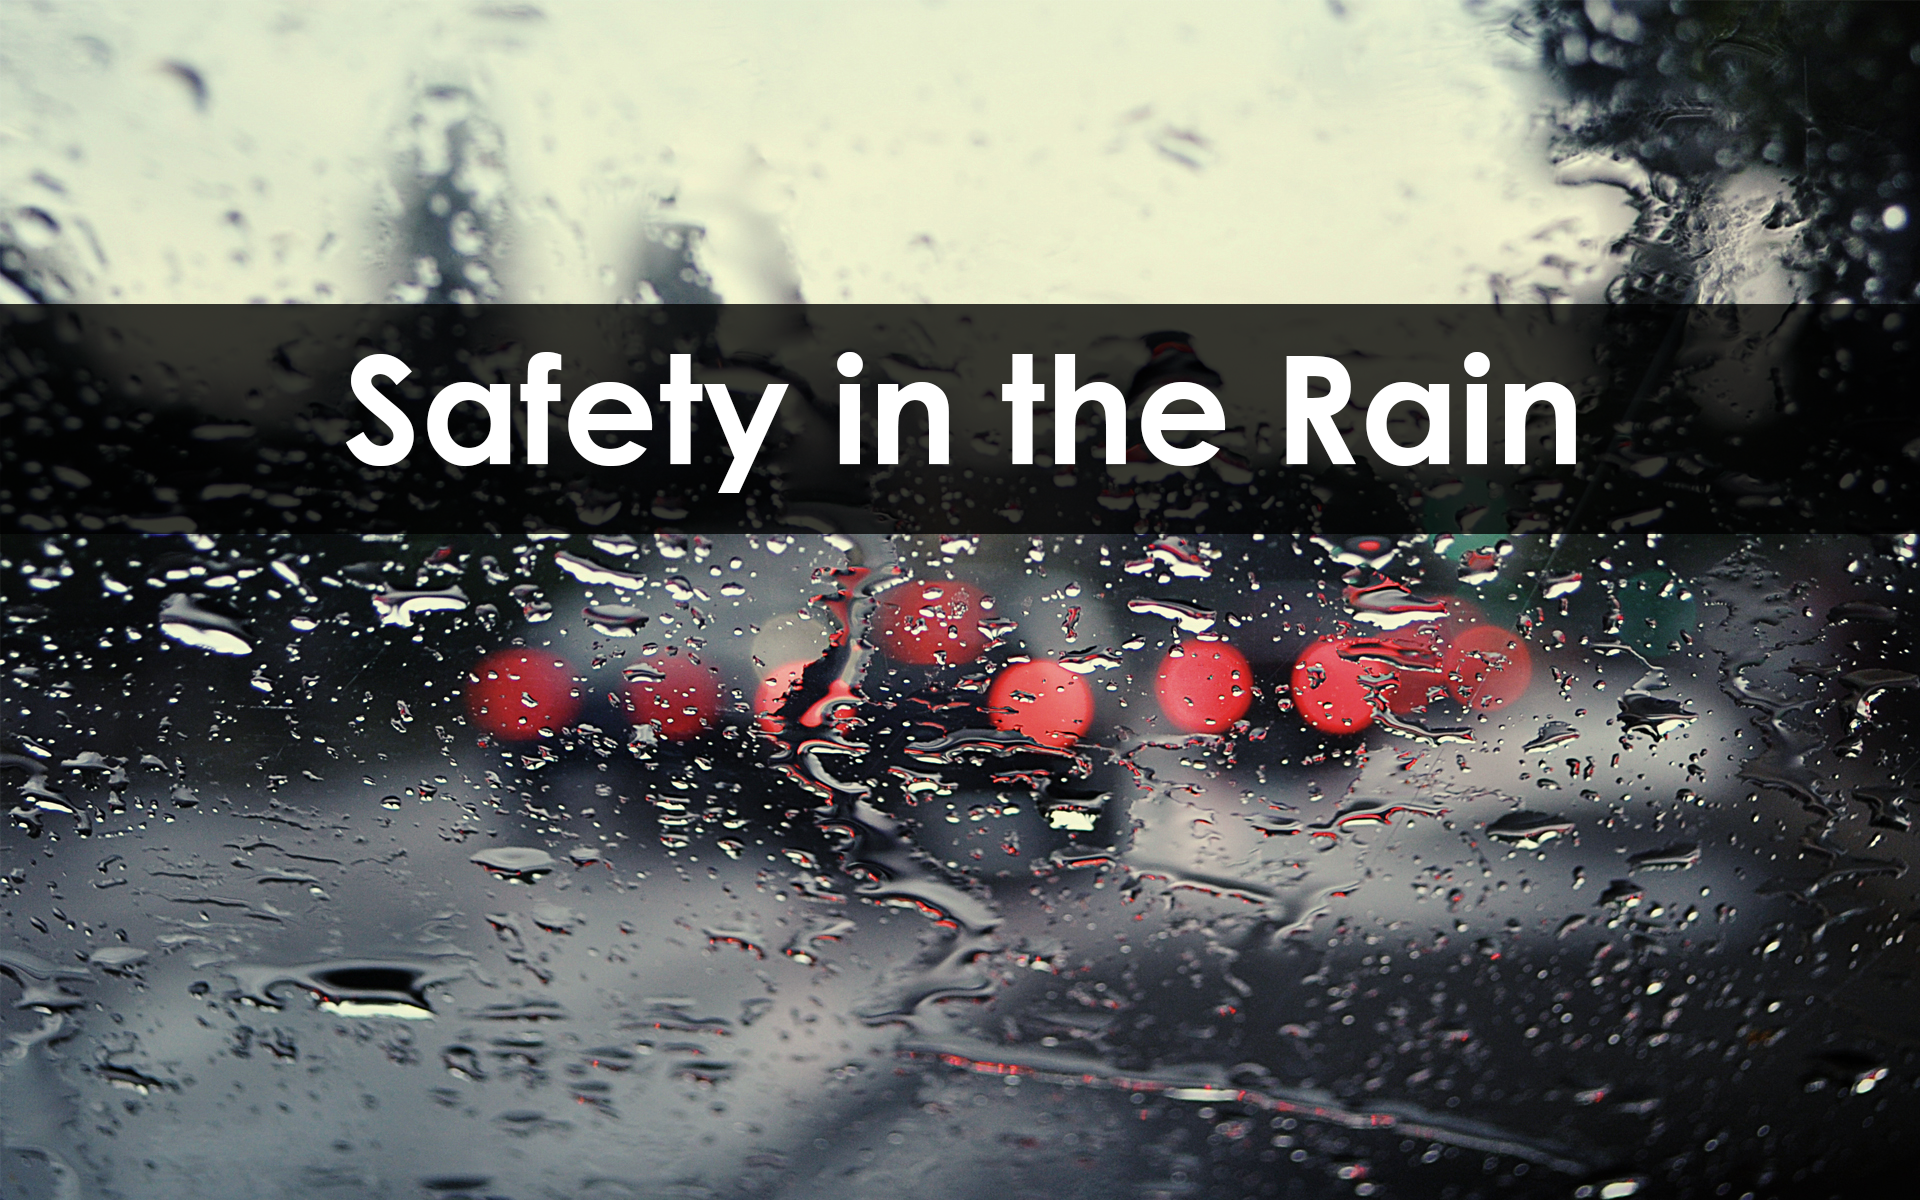 Site Safety: Wet Weather Safety at Work